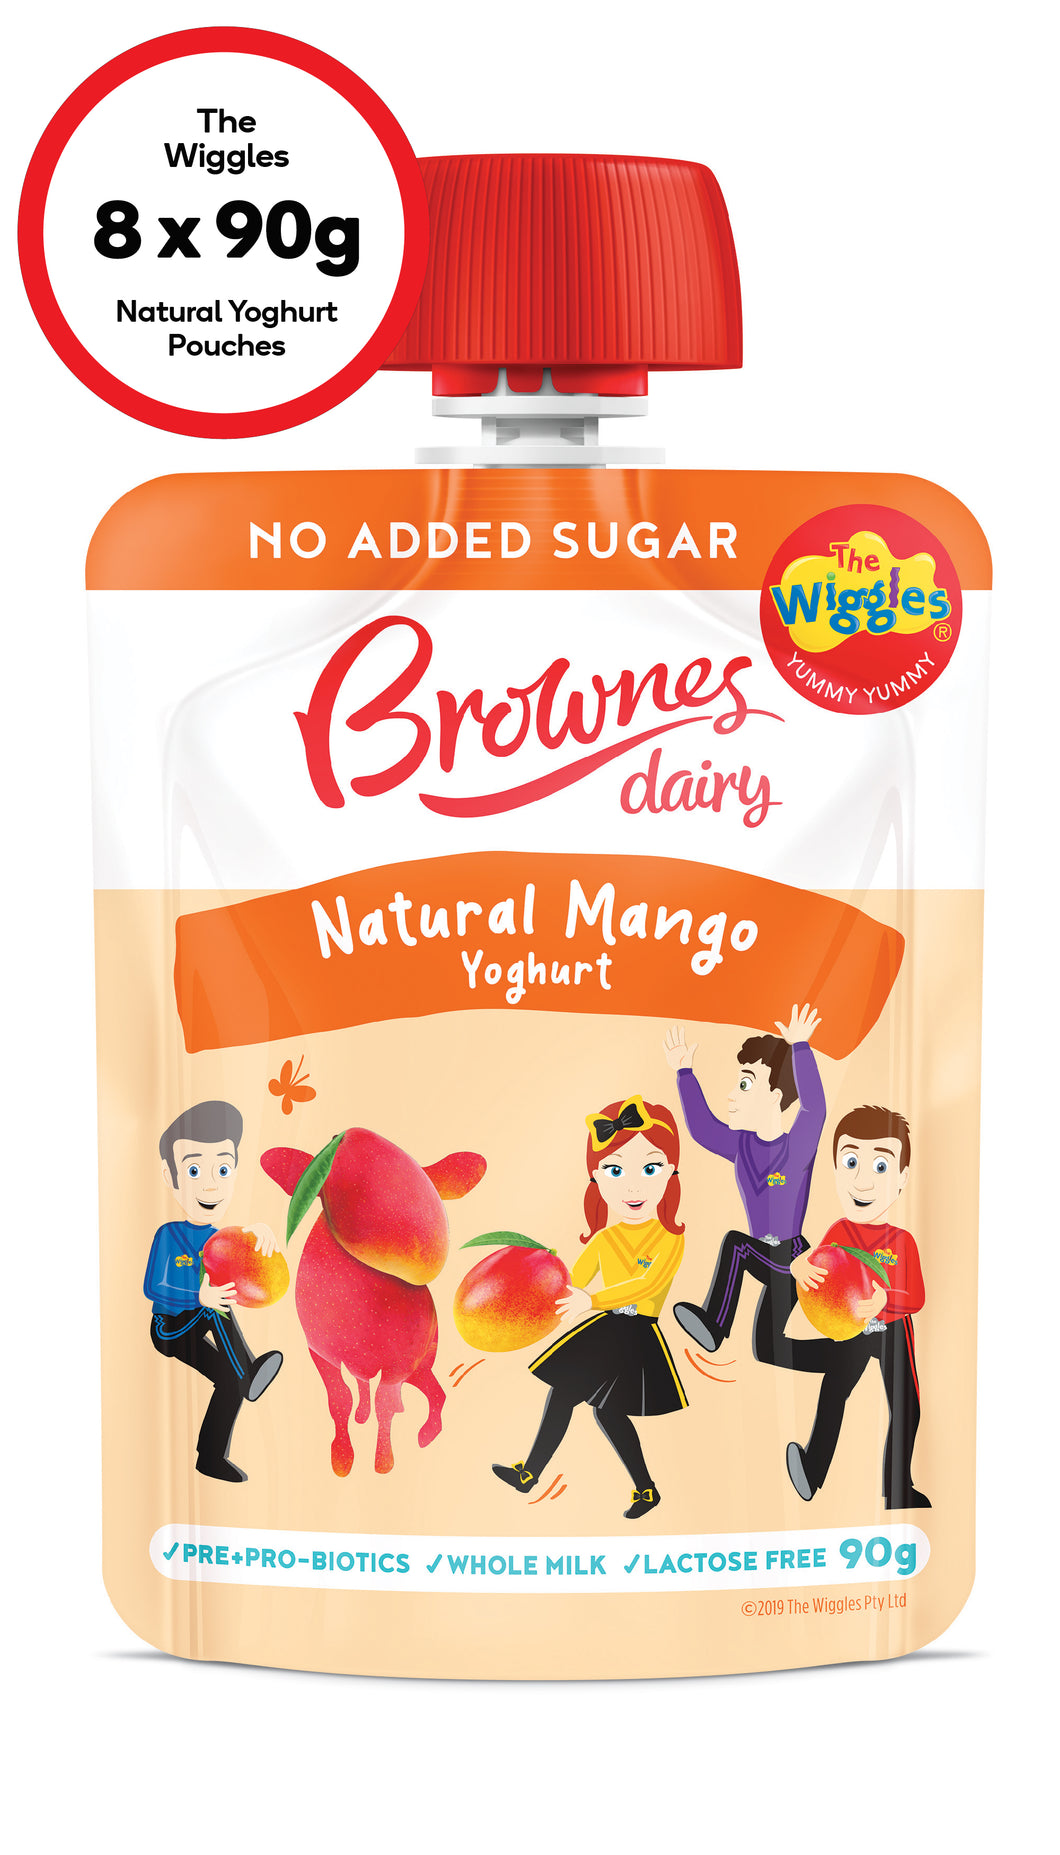 The Wiggles Mango Natural Yoghurt (8 x 90g)